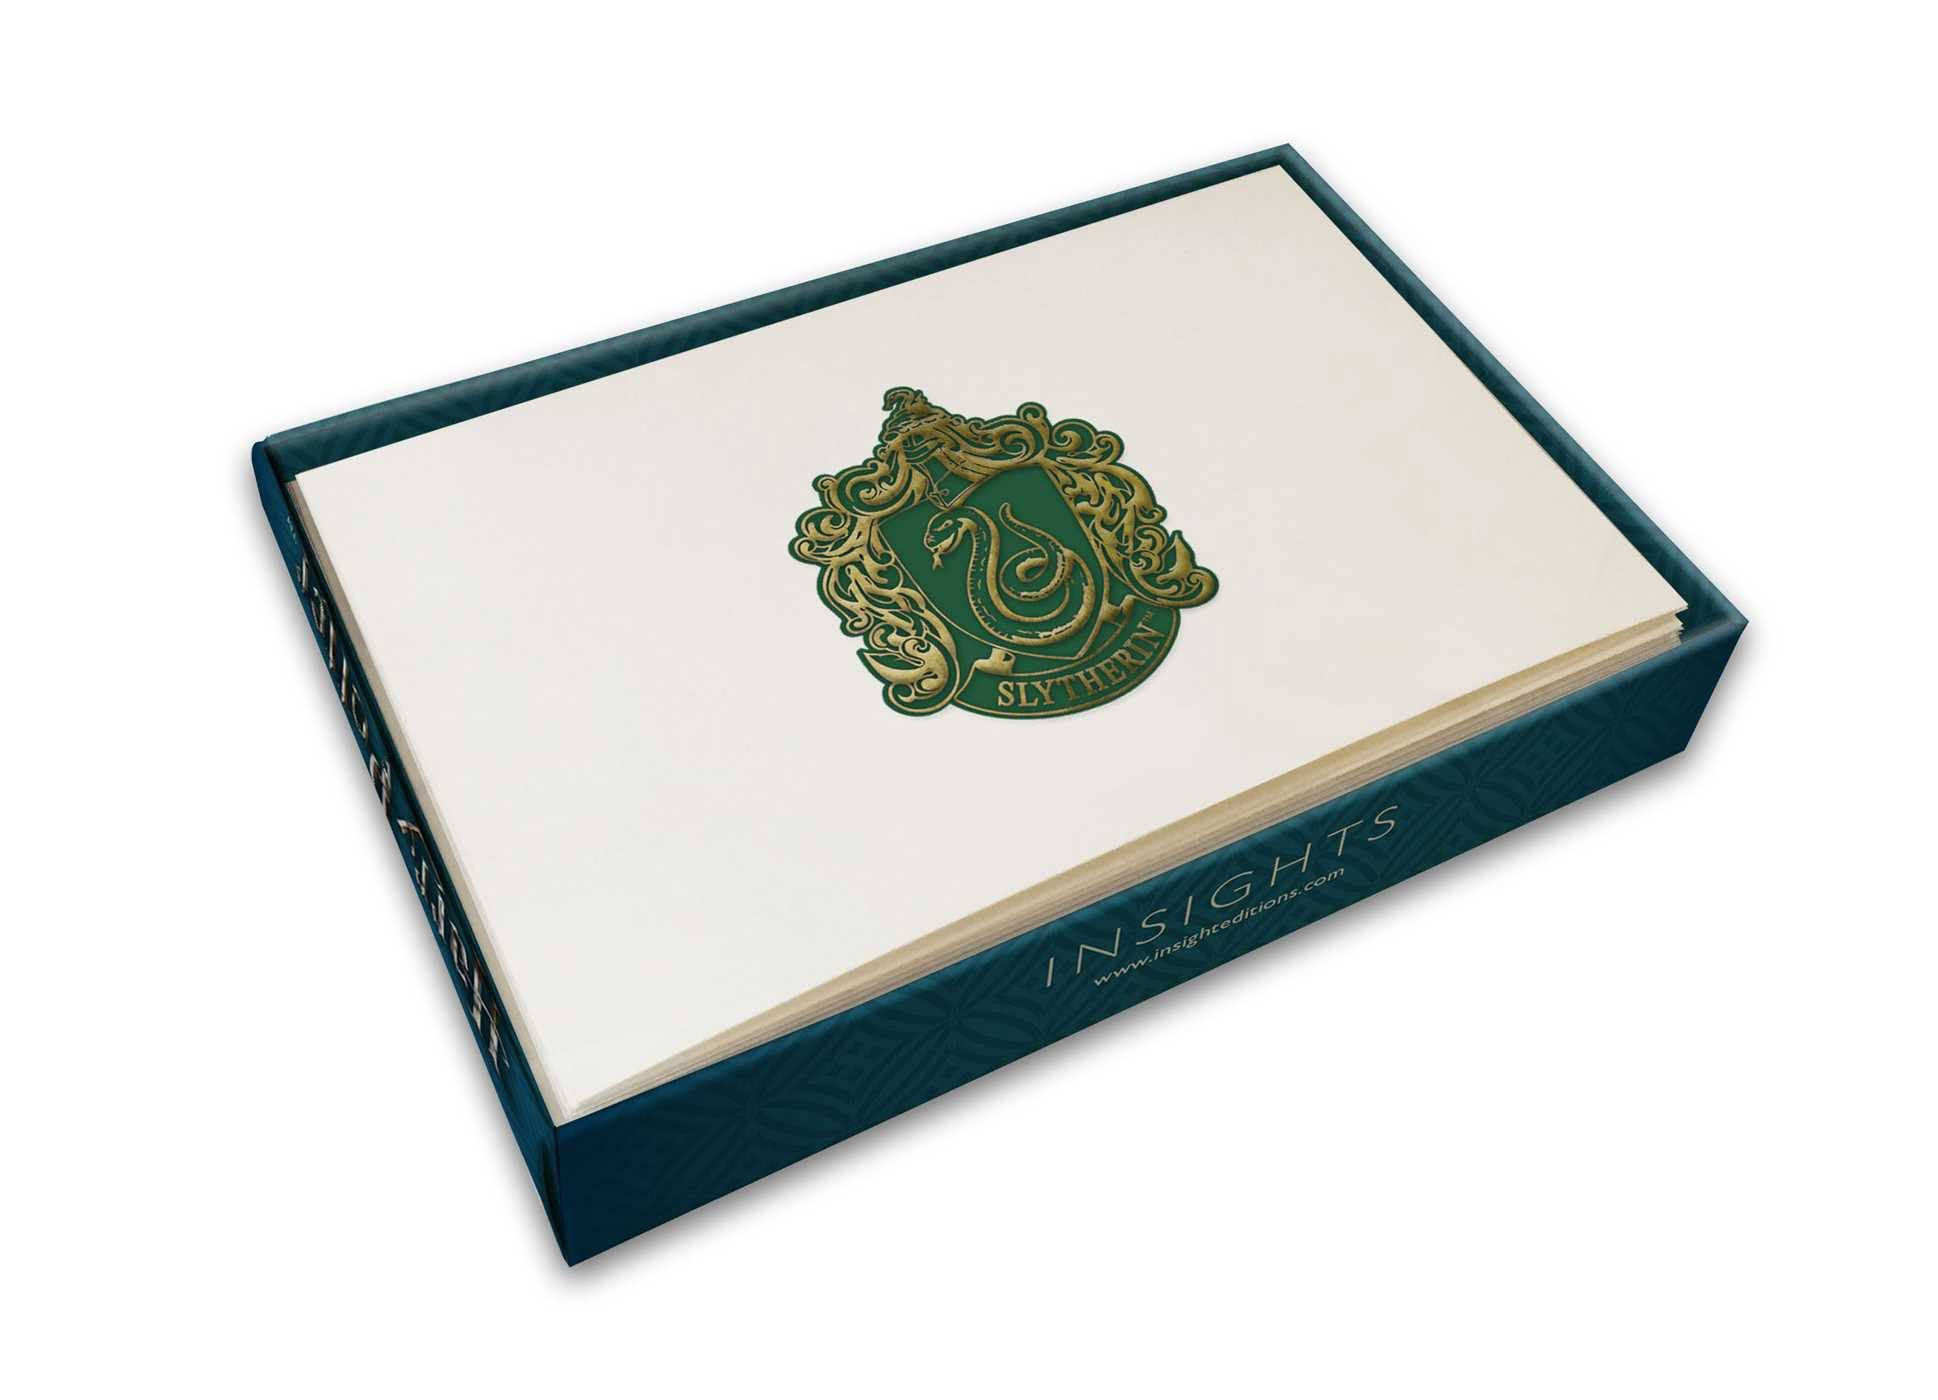 Harry Potter Foil Gift Enclosure Cards 10-Pack Slytherin 89 x 56 mm